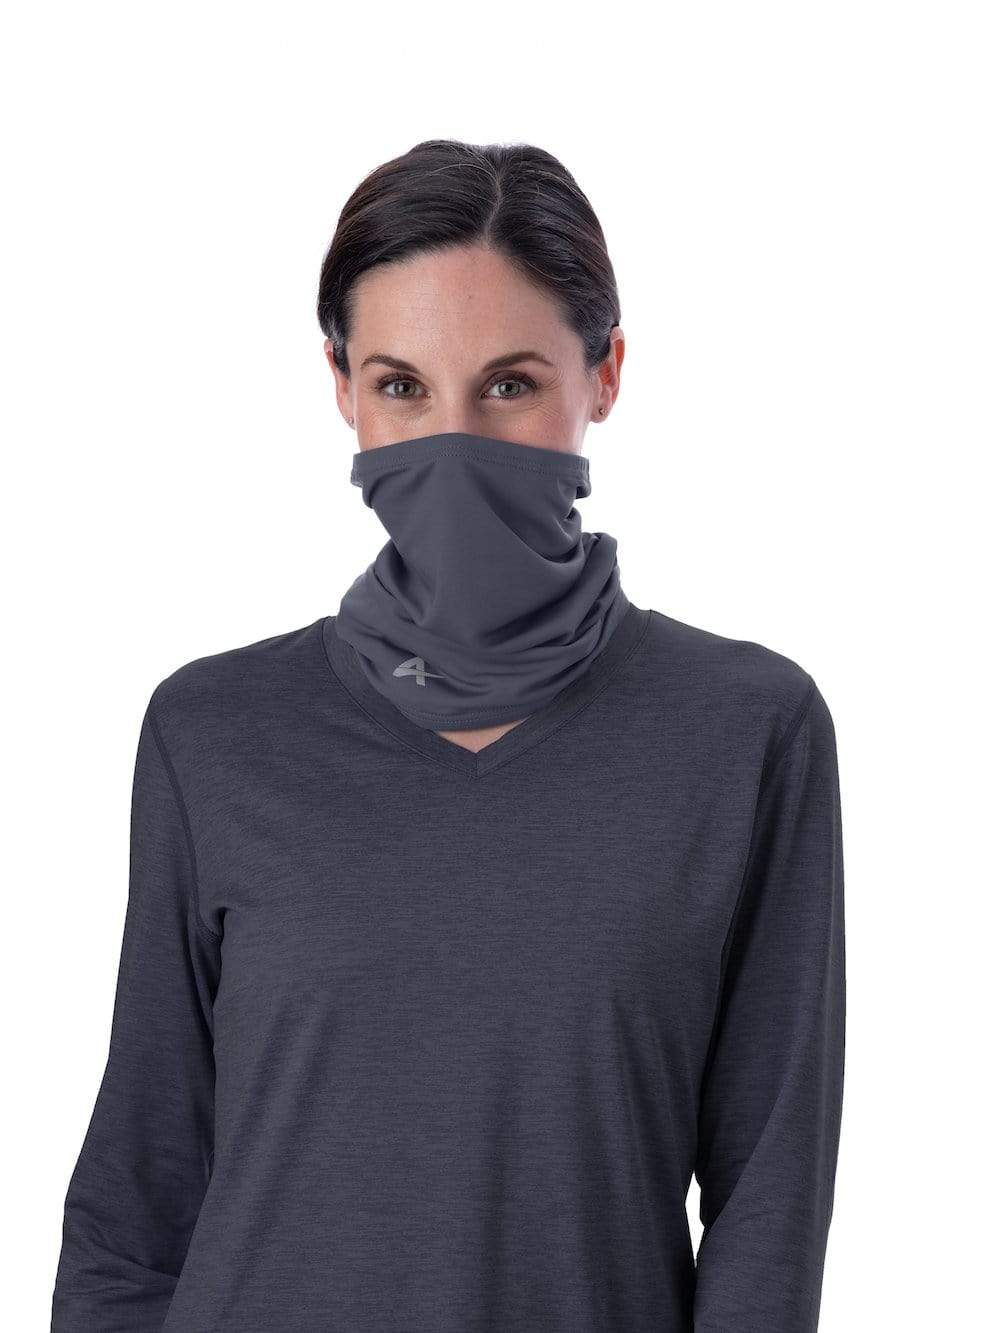 FREE Cooling Headgear Gaiter